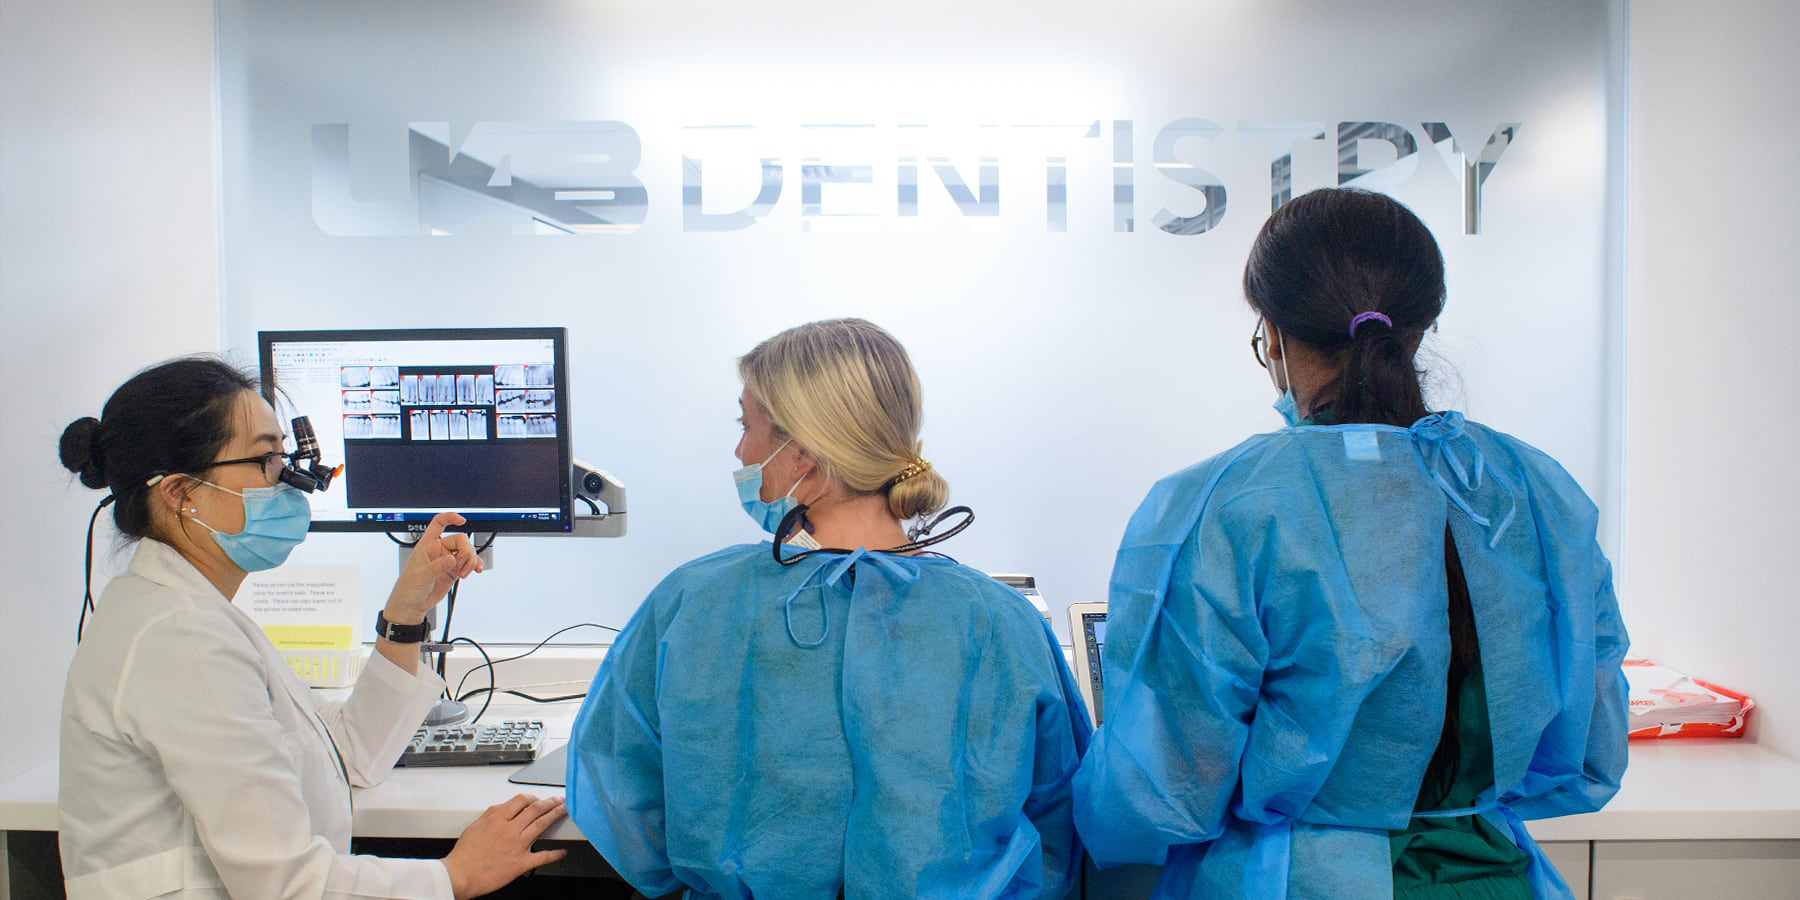 Three people wearing surgical masks and scrubs looking at x-rays in front of a UAB Dentistry sign.